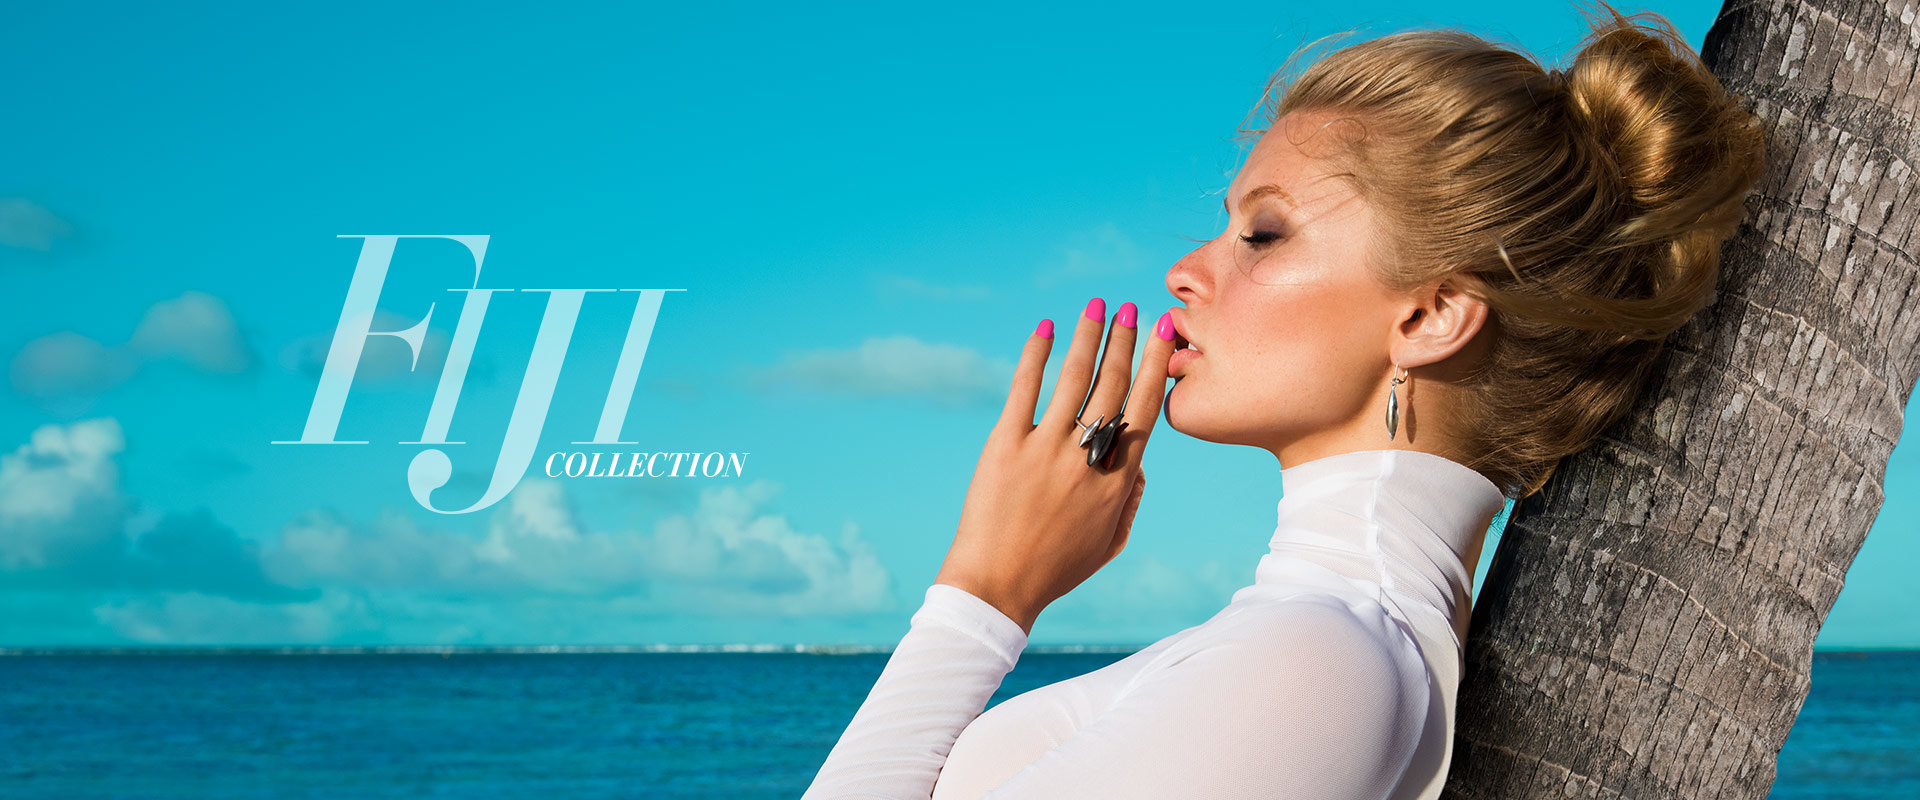 OPI, Fiji Collection, Nail Lacquer, GelColor, Infinite Shine